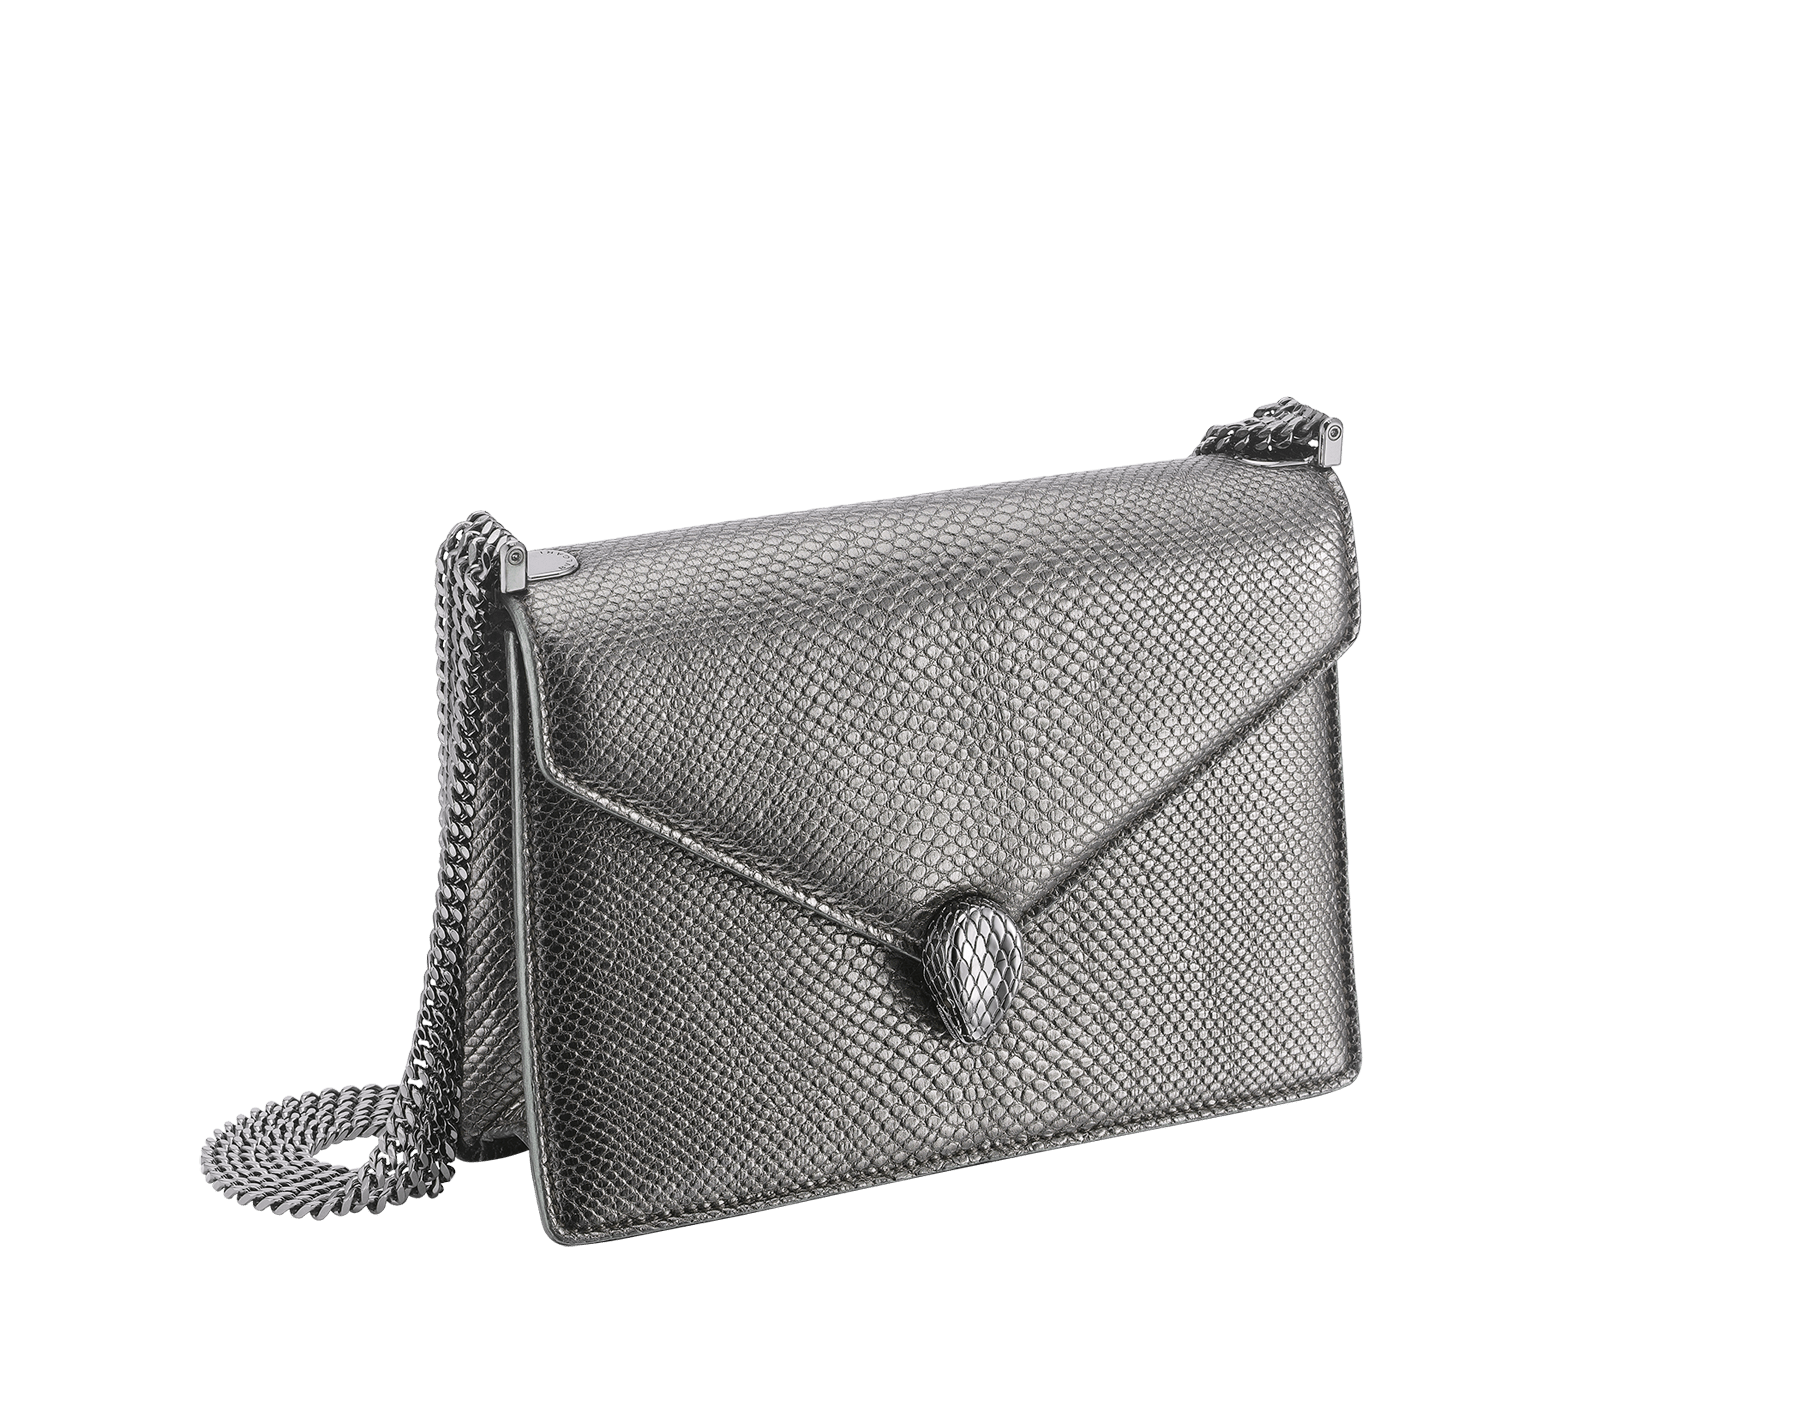 """Serpenti Forever"" multichain shoulder bag in ""Molten"" Charcoal Diamond grey karung skin with black nappa leather inner lining, offering a touch of radiance for the Winter Holidays. New Serpenti head closure in dark ruthenium-plated brass, complete with ruby-red enamel eyes. 290543 image 2"